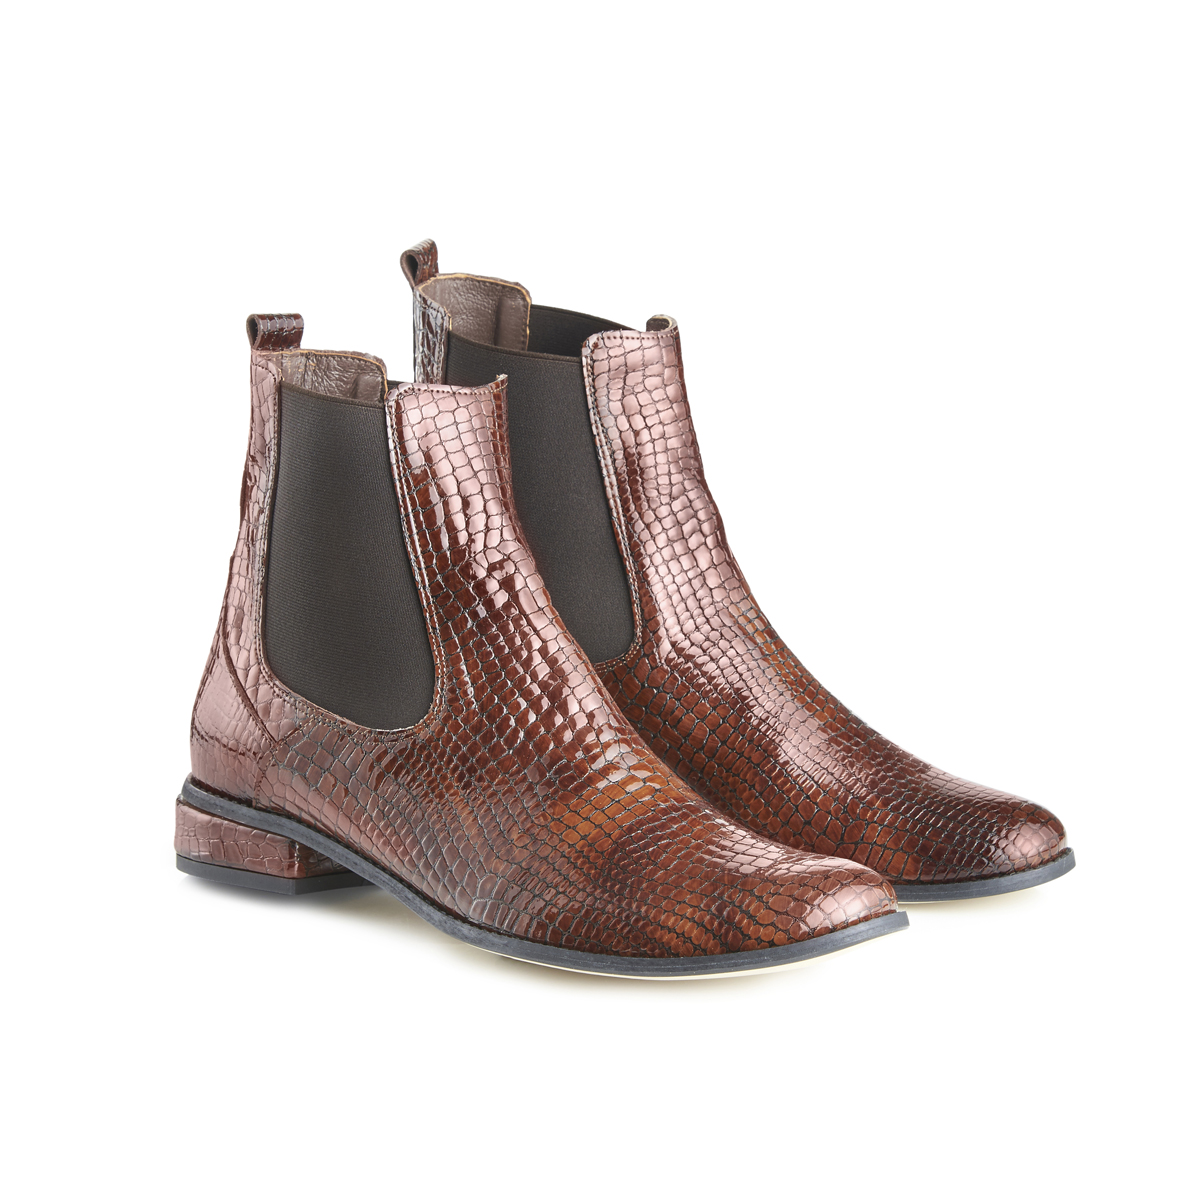 Casey Ankle Boots In Moc Croc - Brown